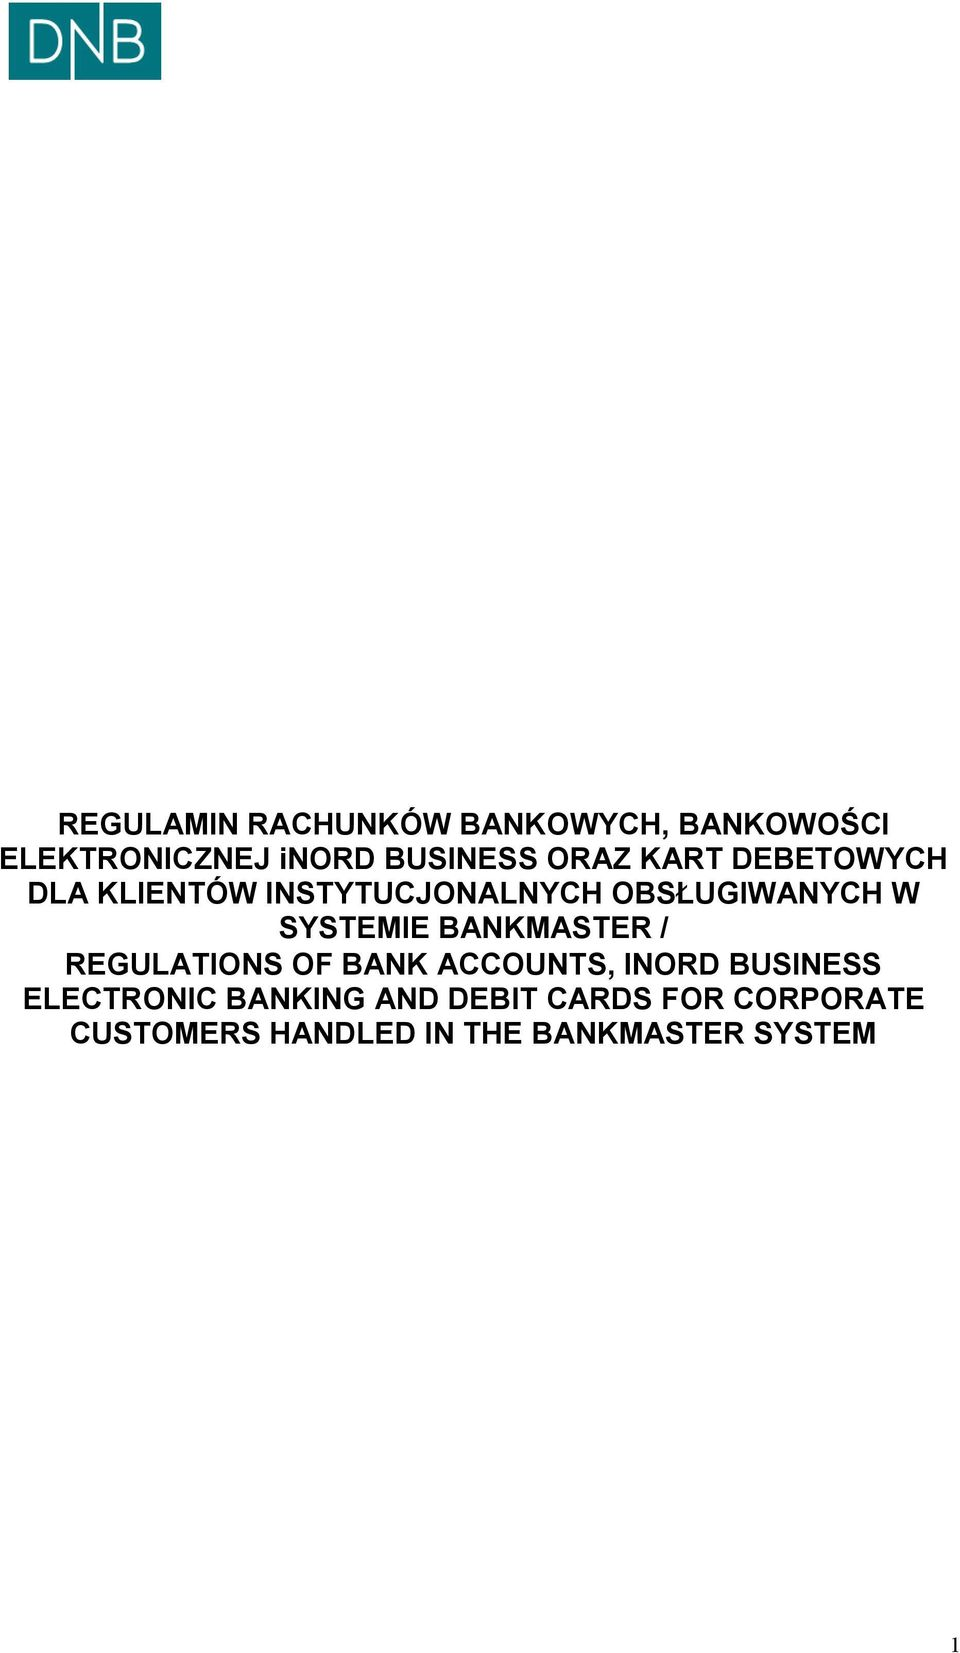 SYSTEMIE BANKMASTER / REGULATIONS OF BANK ACCOUNTS, INORD BUSINESS